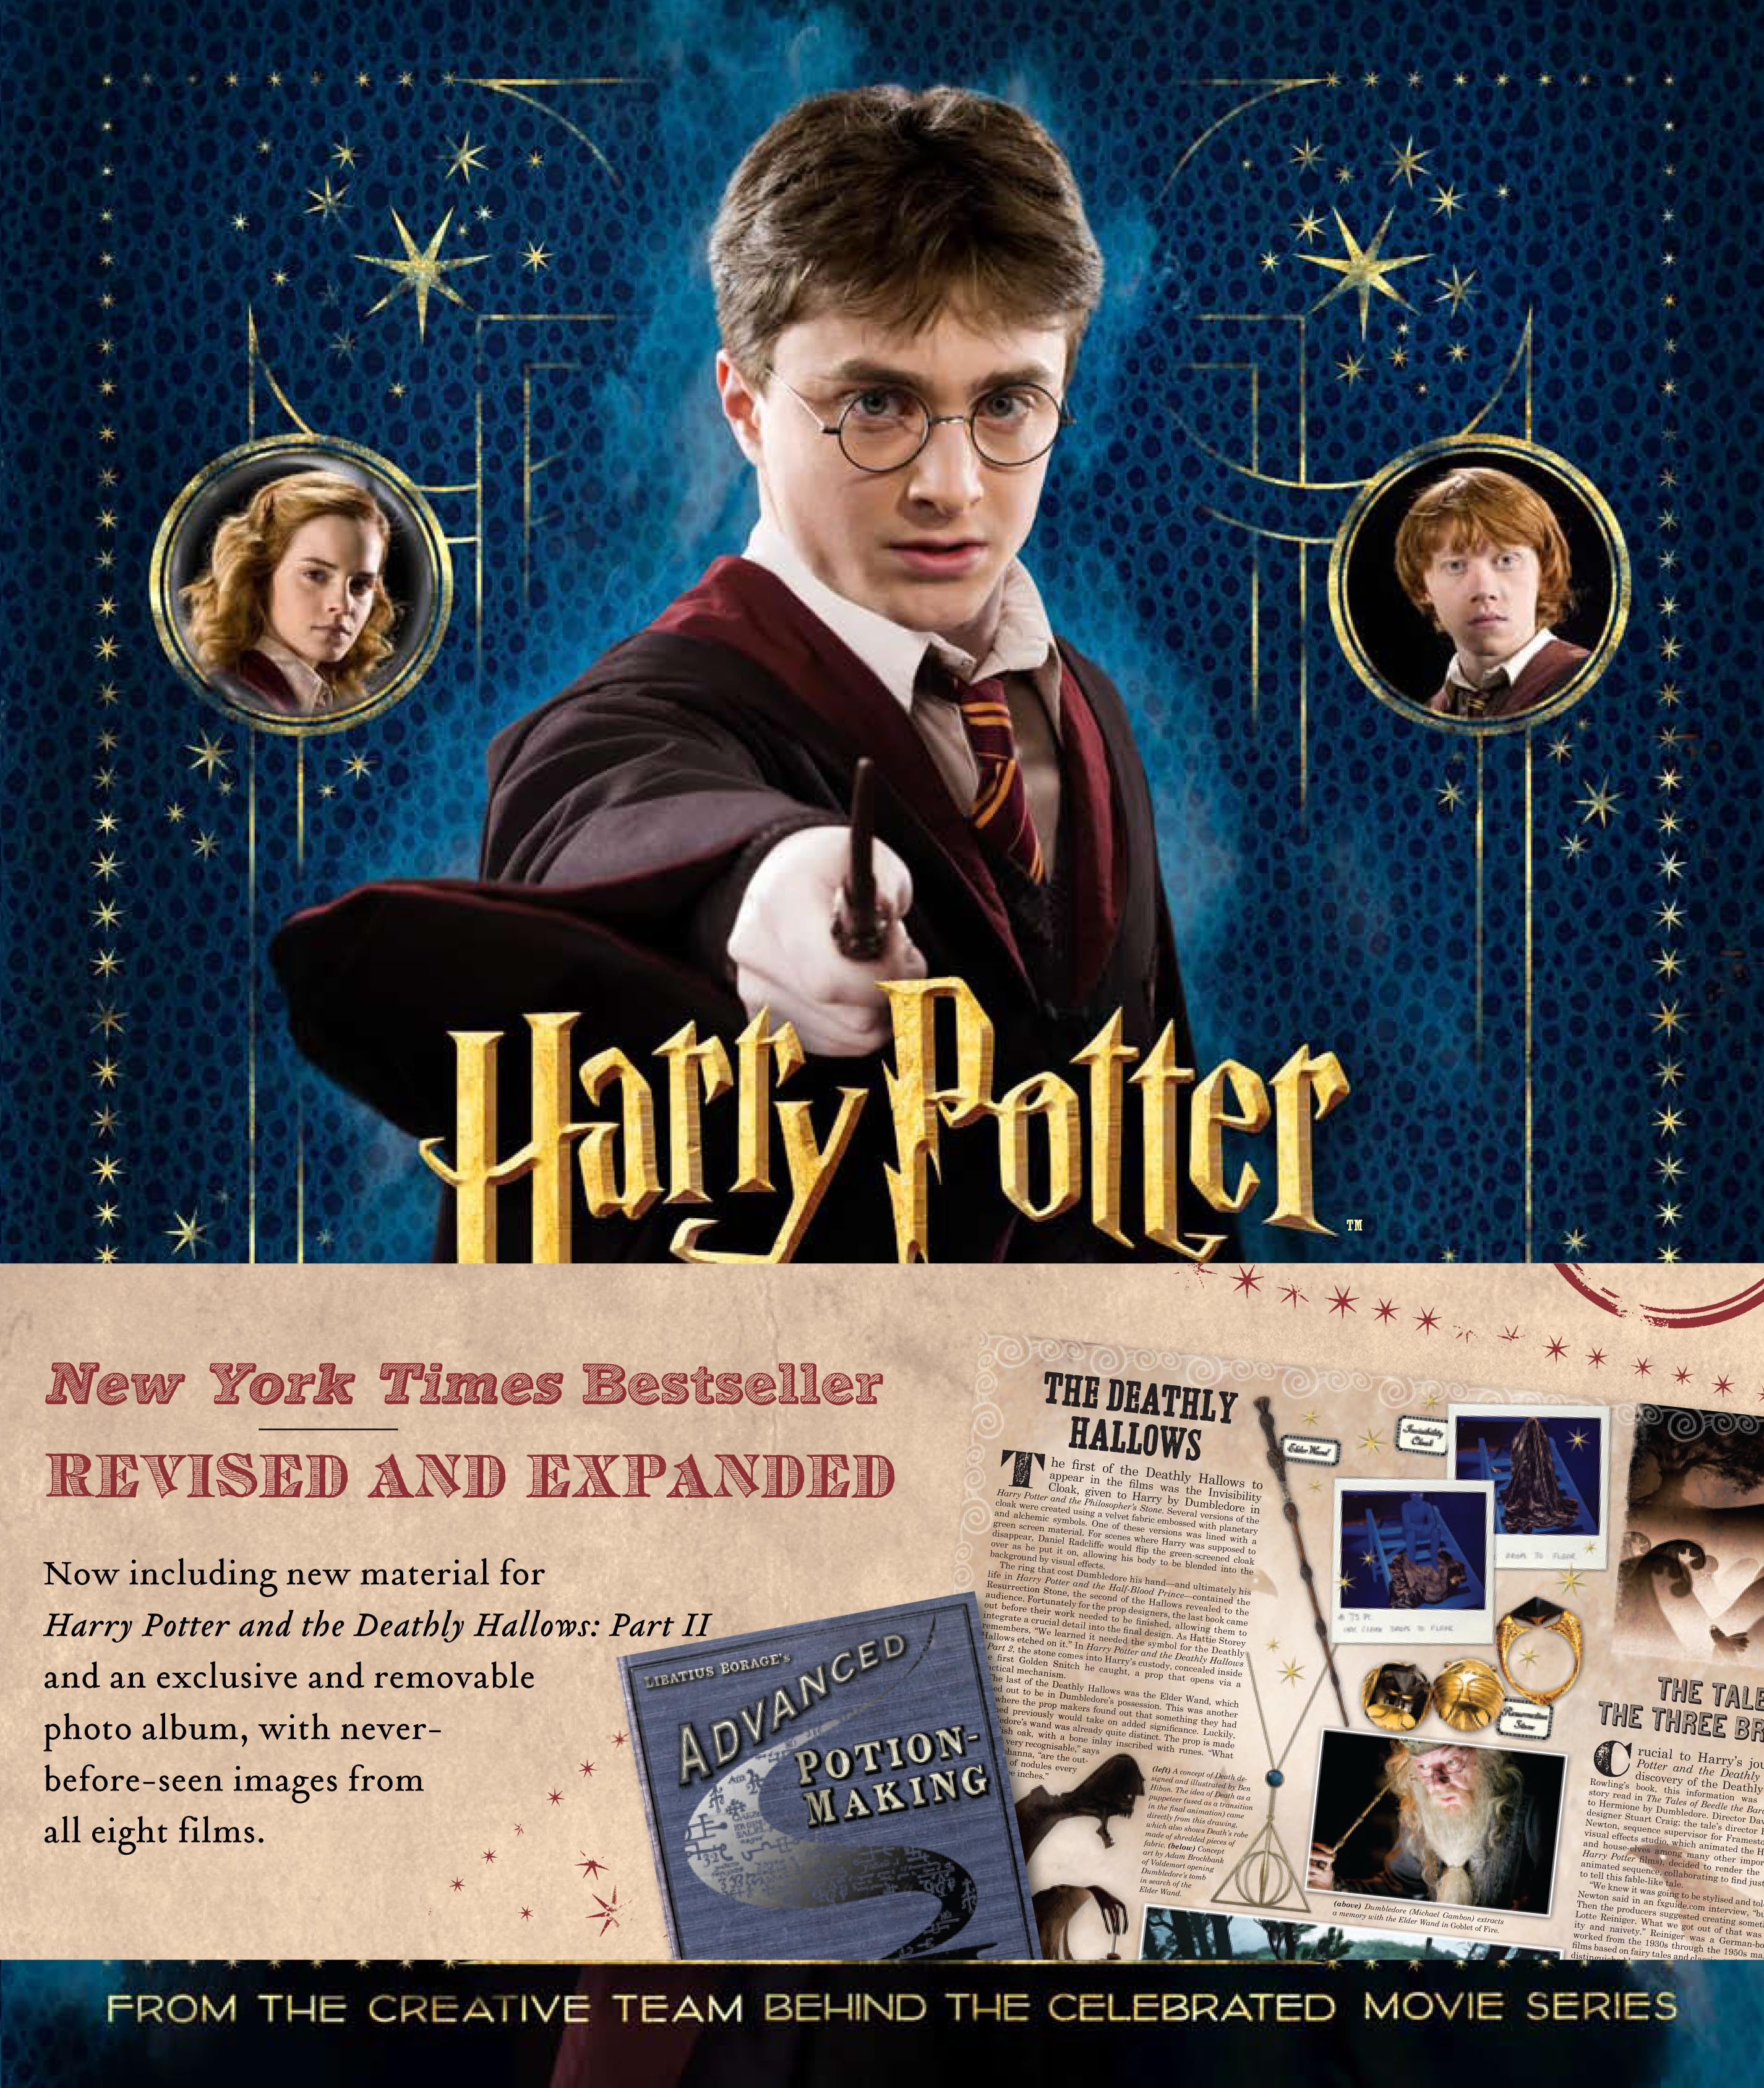 Harry Potter Film Wizardry (Revised and expanded) by Warner Bros, ISBN: 9780593071717